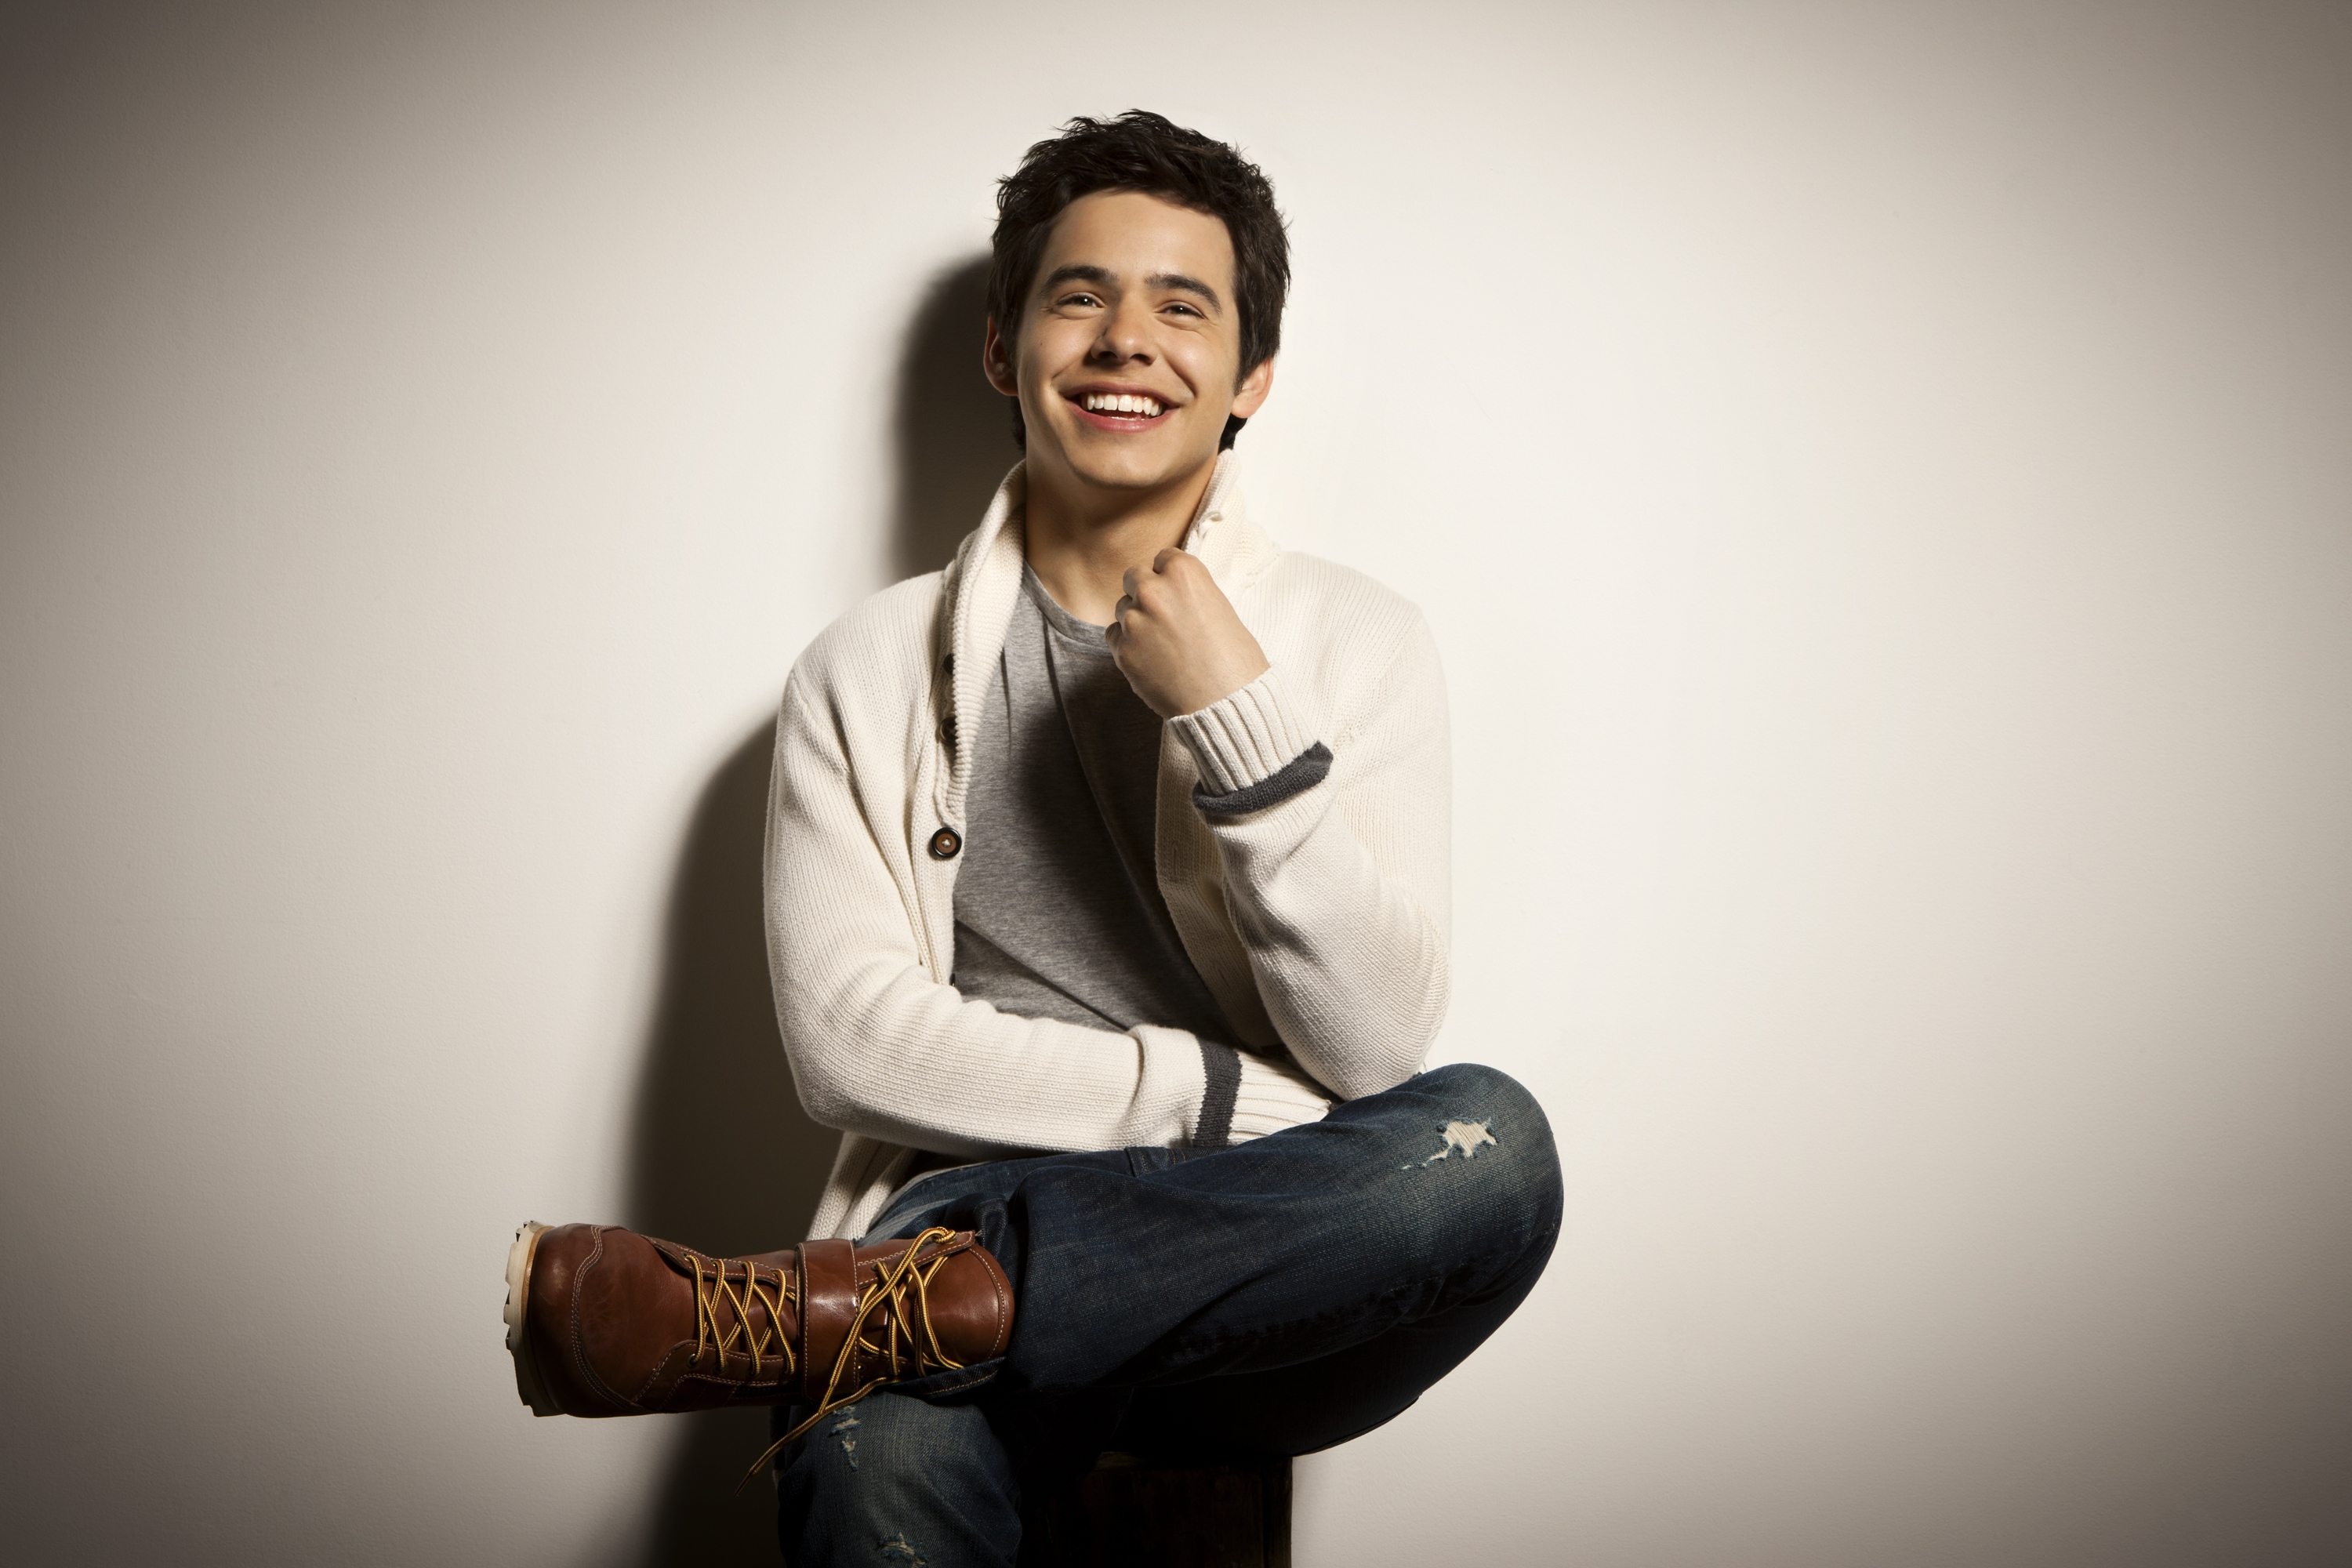 david archuleta - numbdavid archuleta crush, david archuleta – crush скачать, david archuleta – crush перевод, david archuleta crush mp3, david archuleta - numb, david archuleta mp3, david archuleta something 'bout love, david archuleta - numb lyrics, david archuleta 2016, david archuleta lyrics, david archuleta instagram, david archuleta a little prayer, david archuleta my hands, david archuleta christmas, david archuleta you can, david archuleta youtube, david archuleta family, david archuleta desperate, david archuleta prayer, david archuleta mirrors